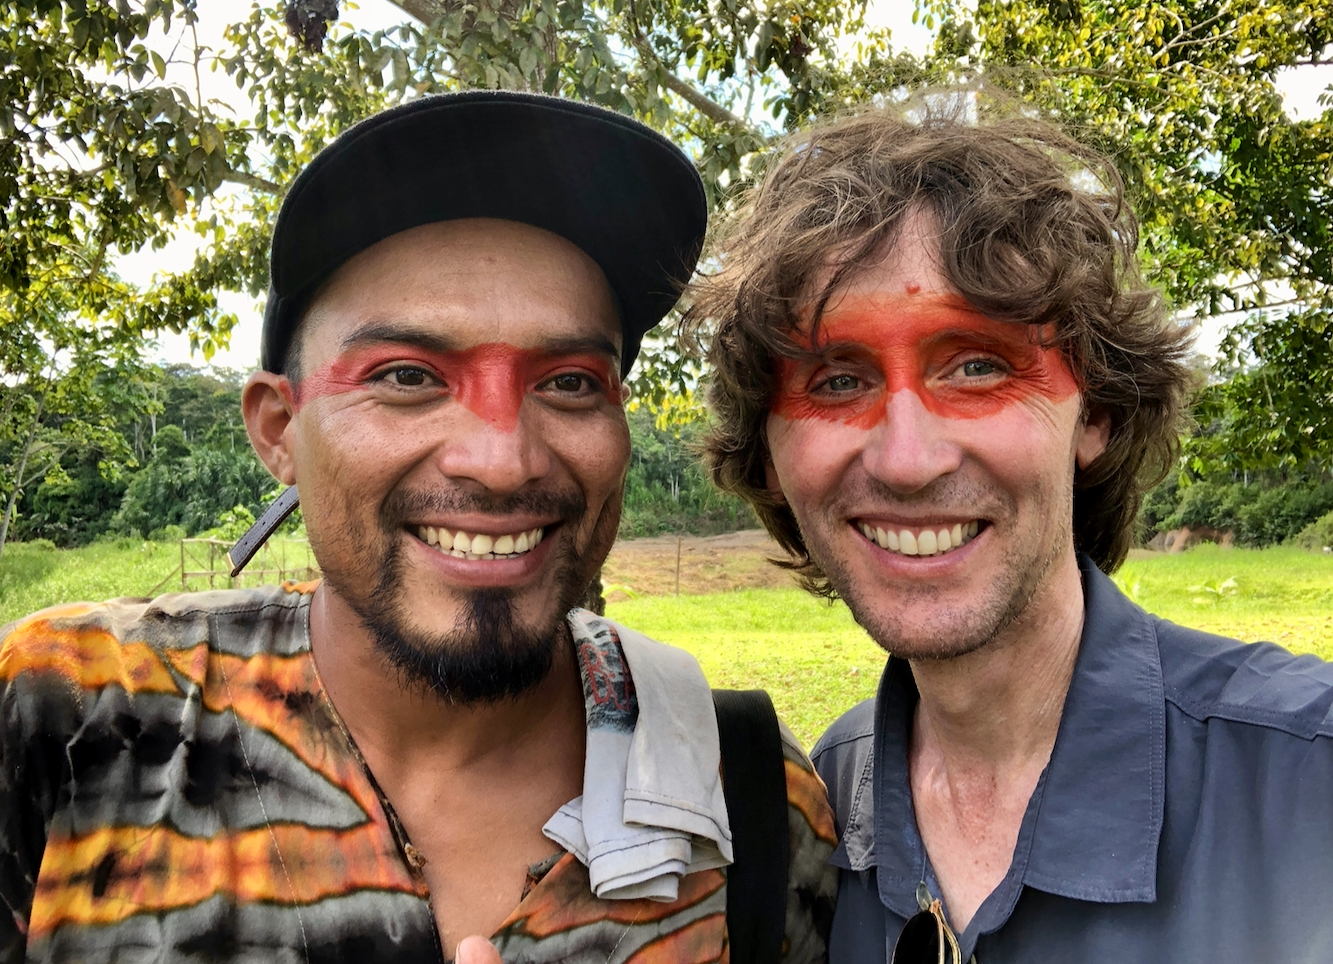 Amazon Indian Nixiwaka Yawanawá and British artist John Dyer pictured in the tribal village of Mutum in the Amazon rainforest, Brazil.